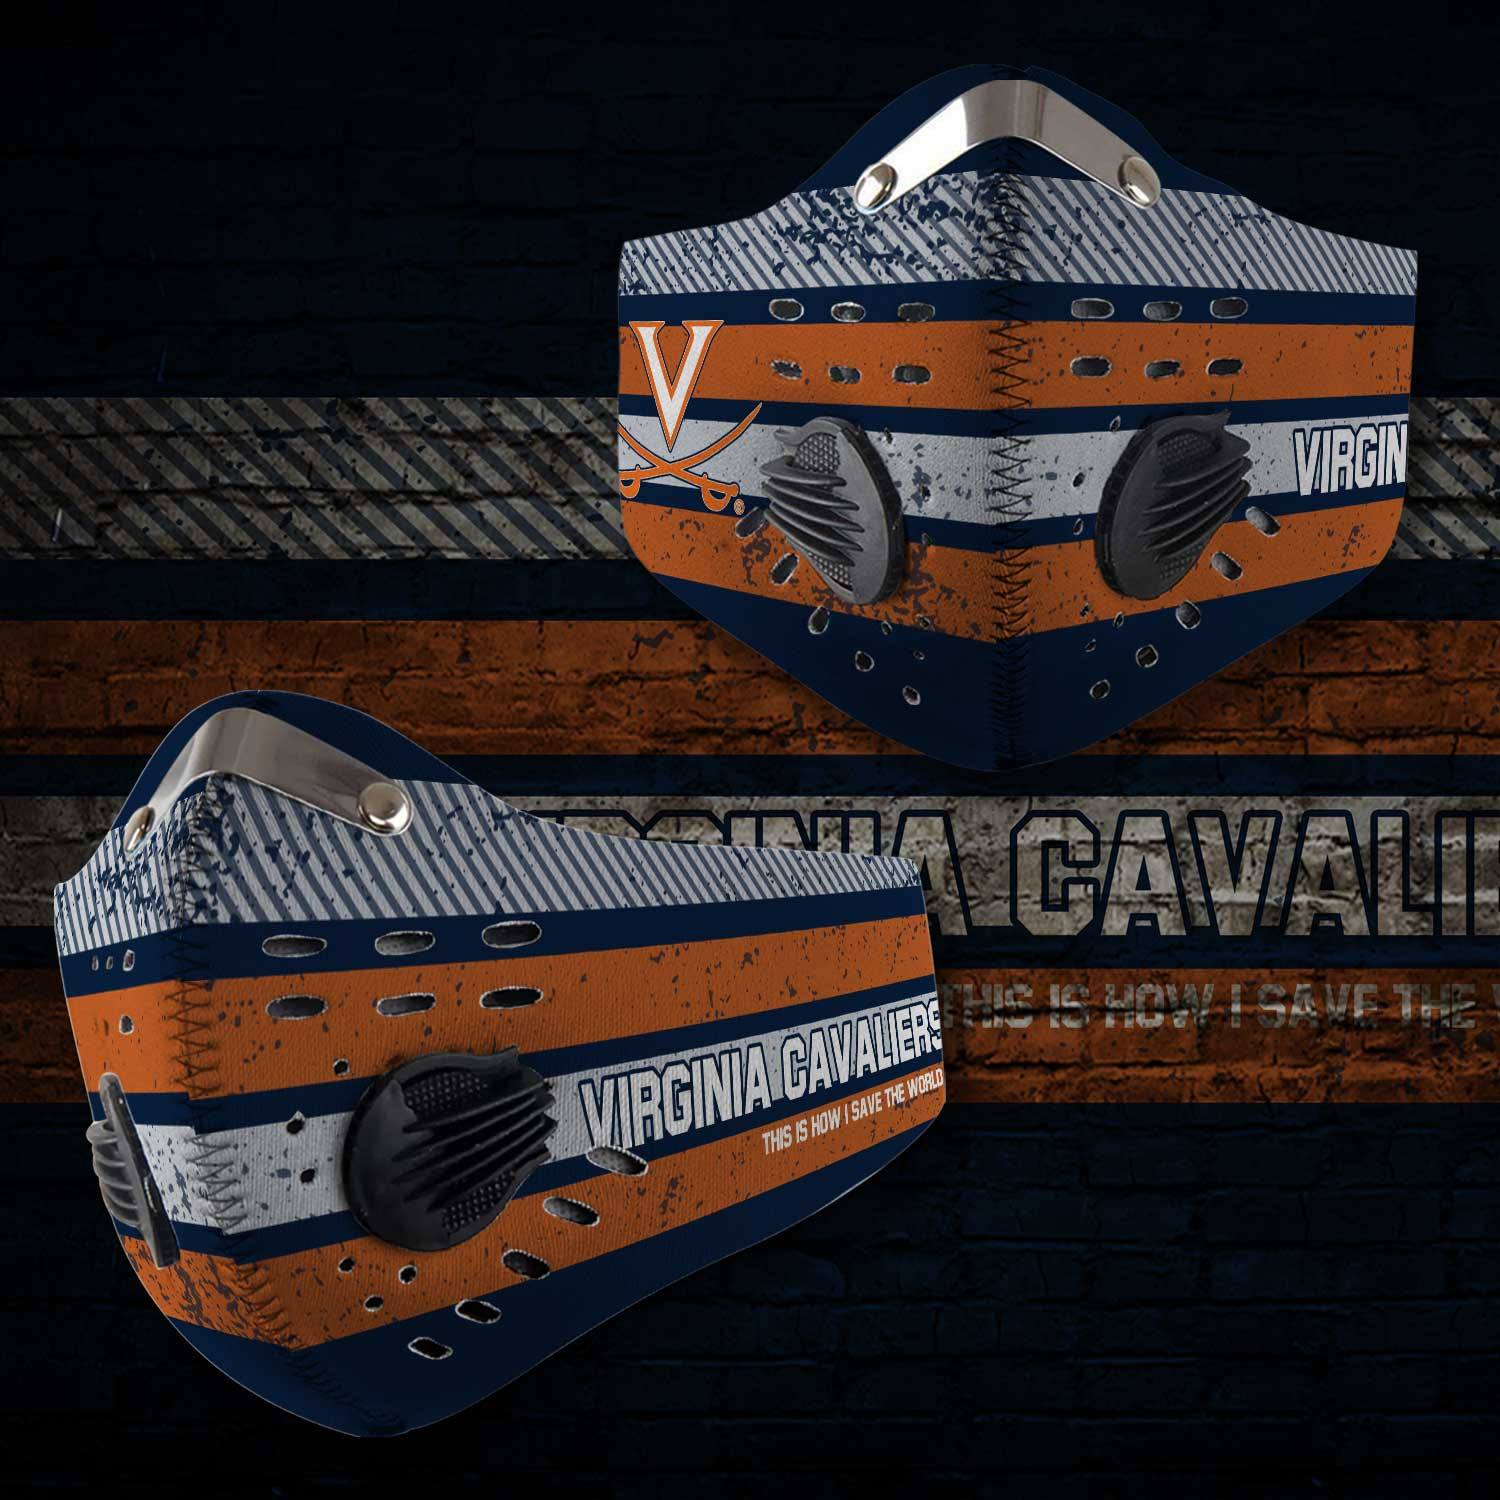 Virginia cavaliers this is how i save the world carbon filter face mask 2